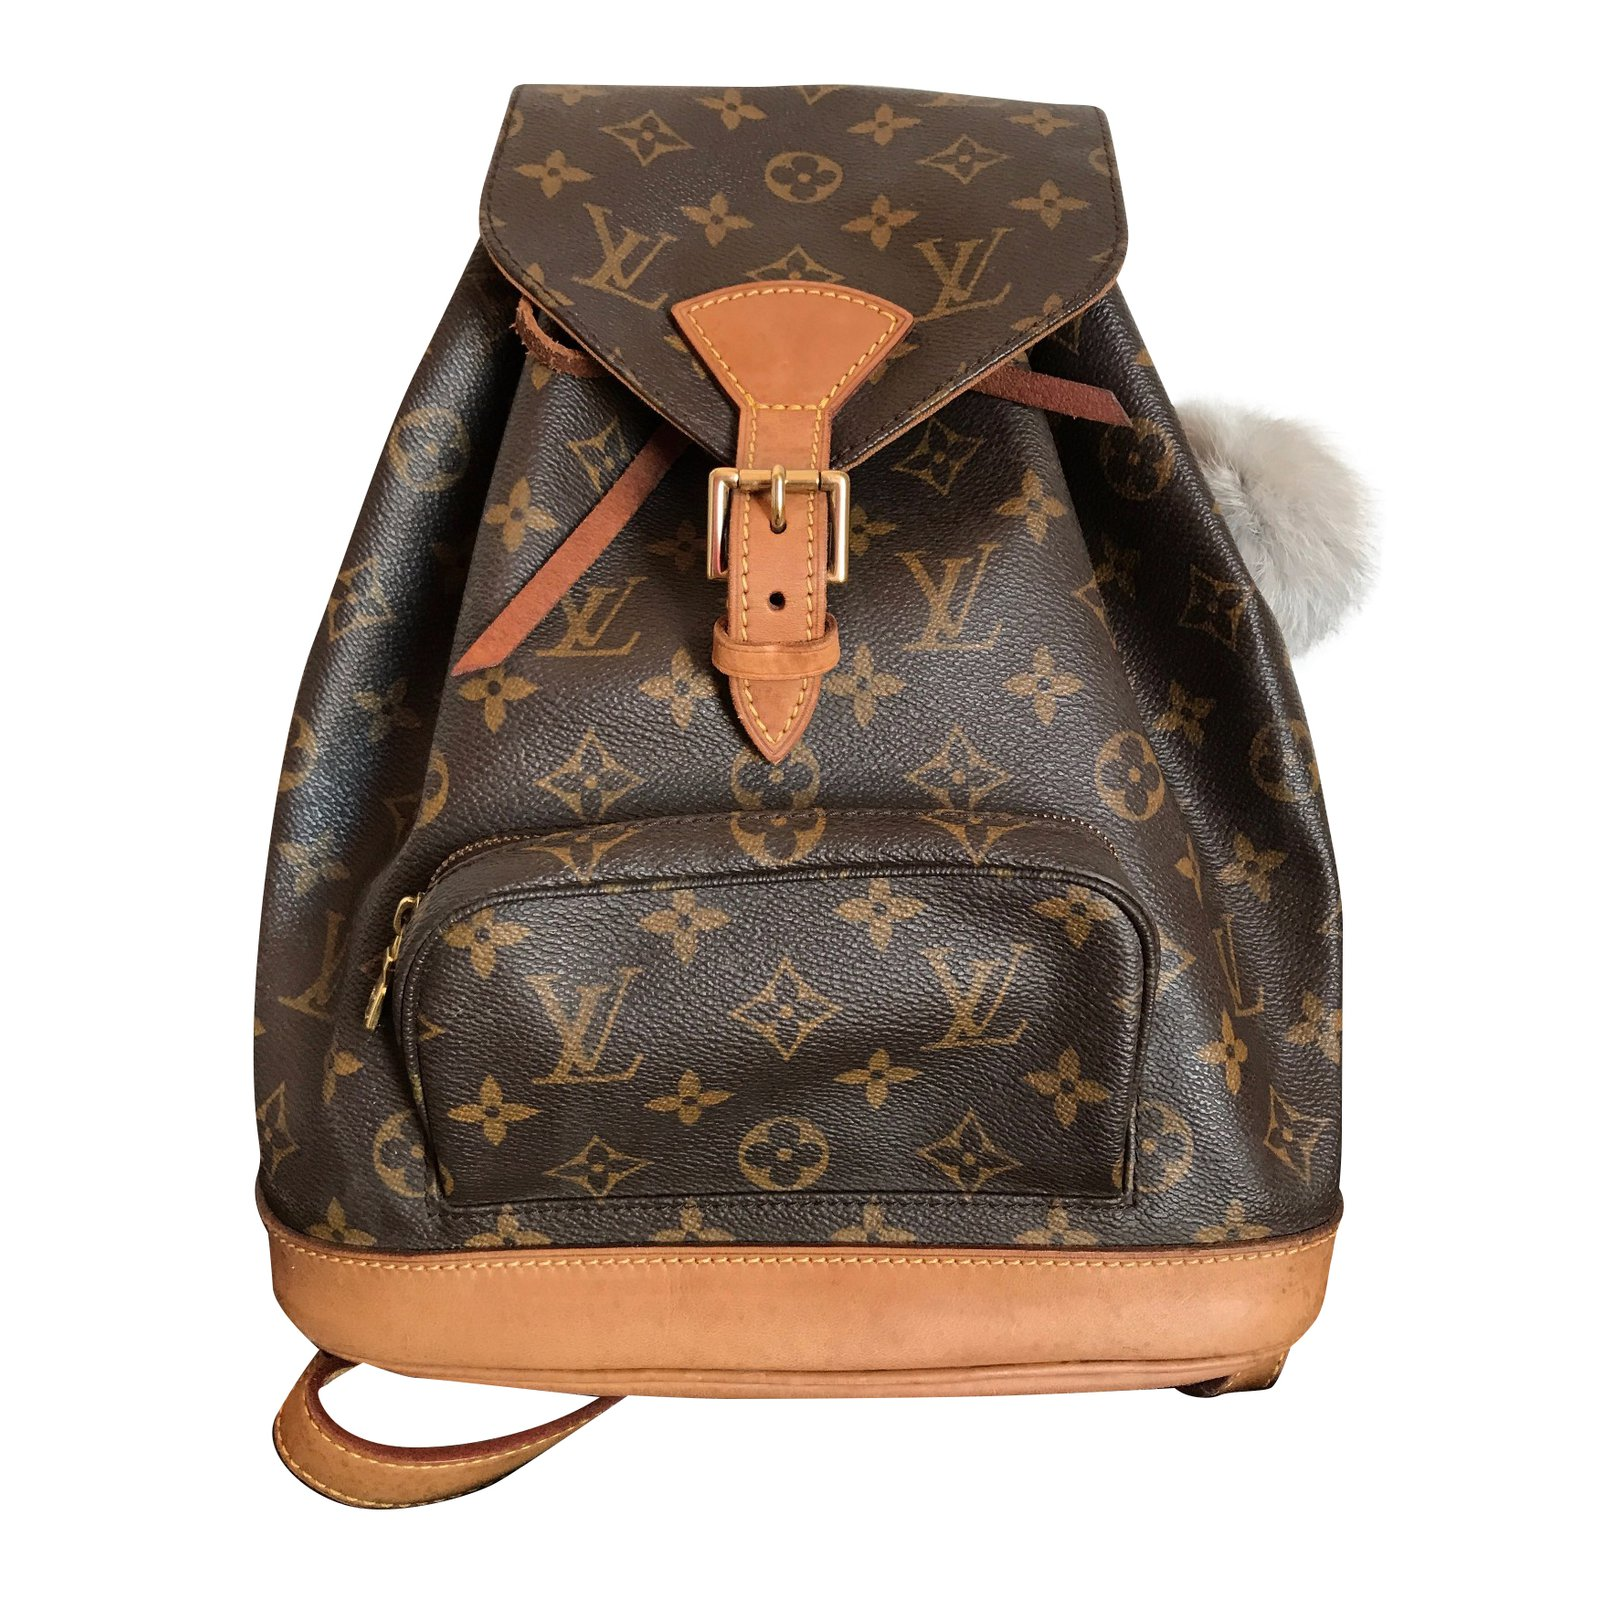 20a968725c09 Louis Vuitton Backpack Montsouris Mm Canvas Monogram Backpacks